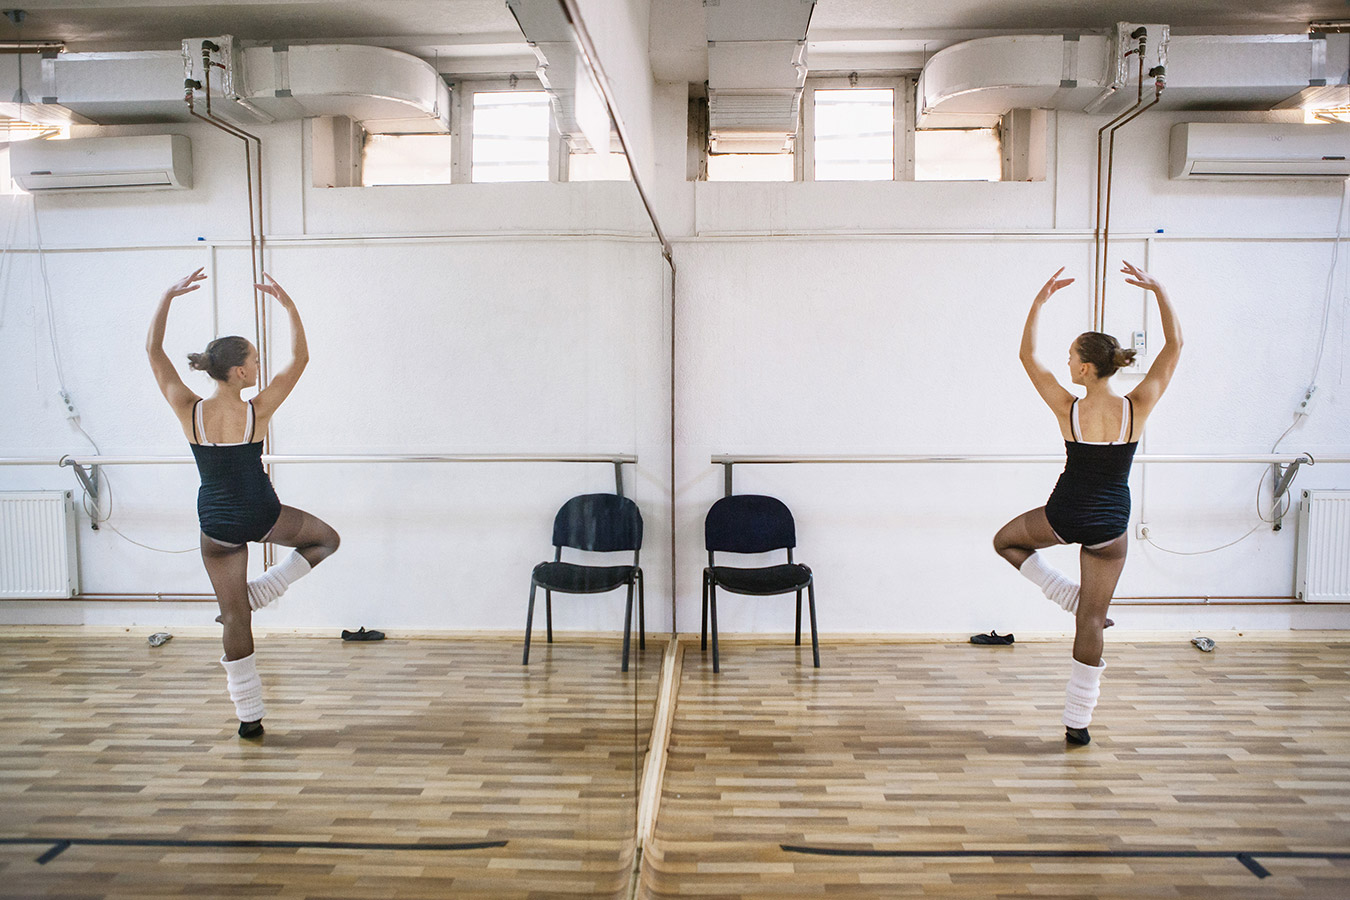 Etrita Abdullahu (15), a ballet student, watchs her move in the mirror during a daily rehearsal.